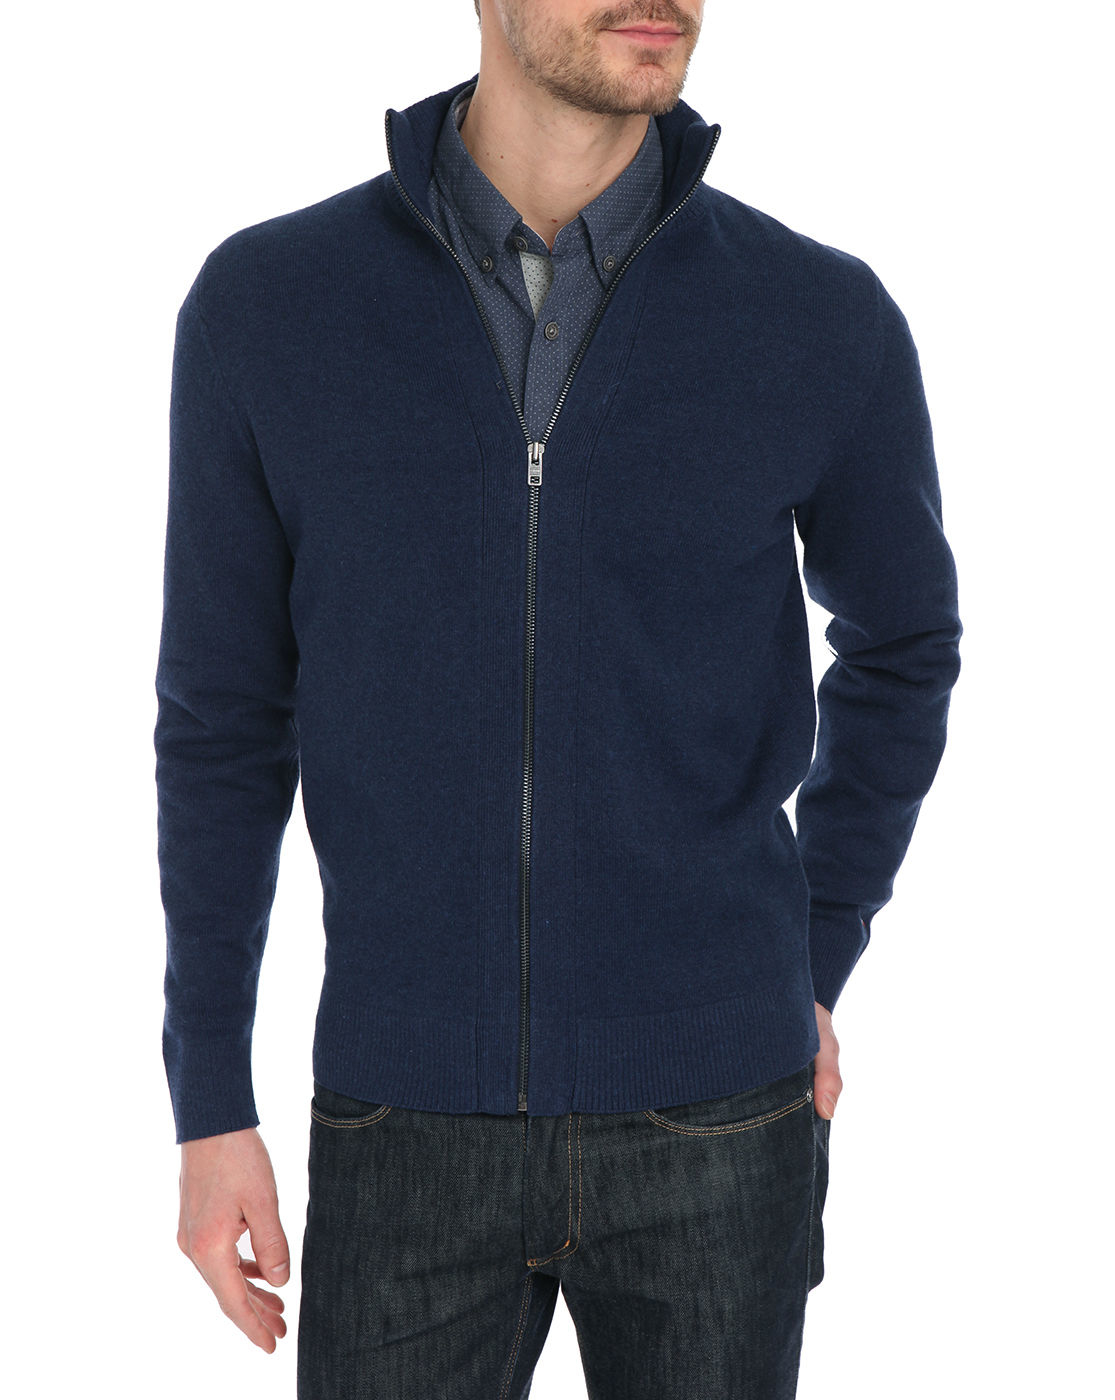 Find great deals on eBay for blue cashmere cardigan. Shop with confidence.